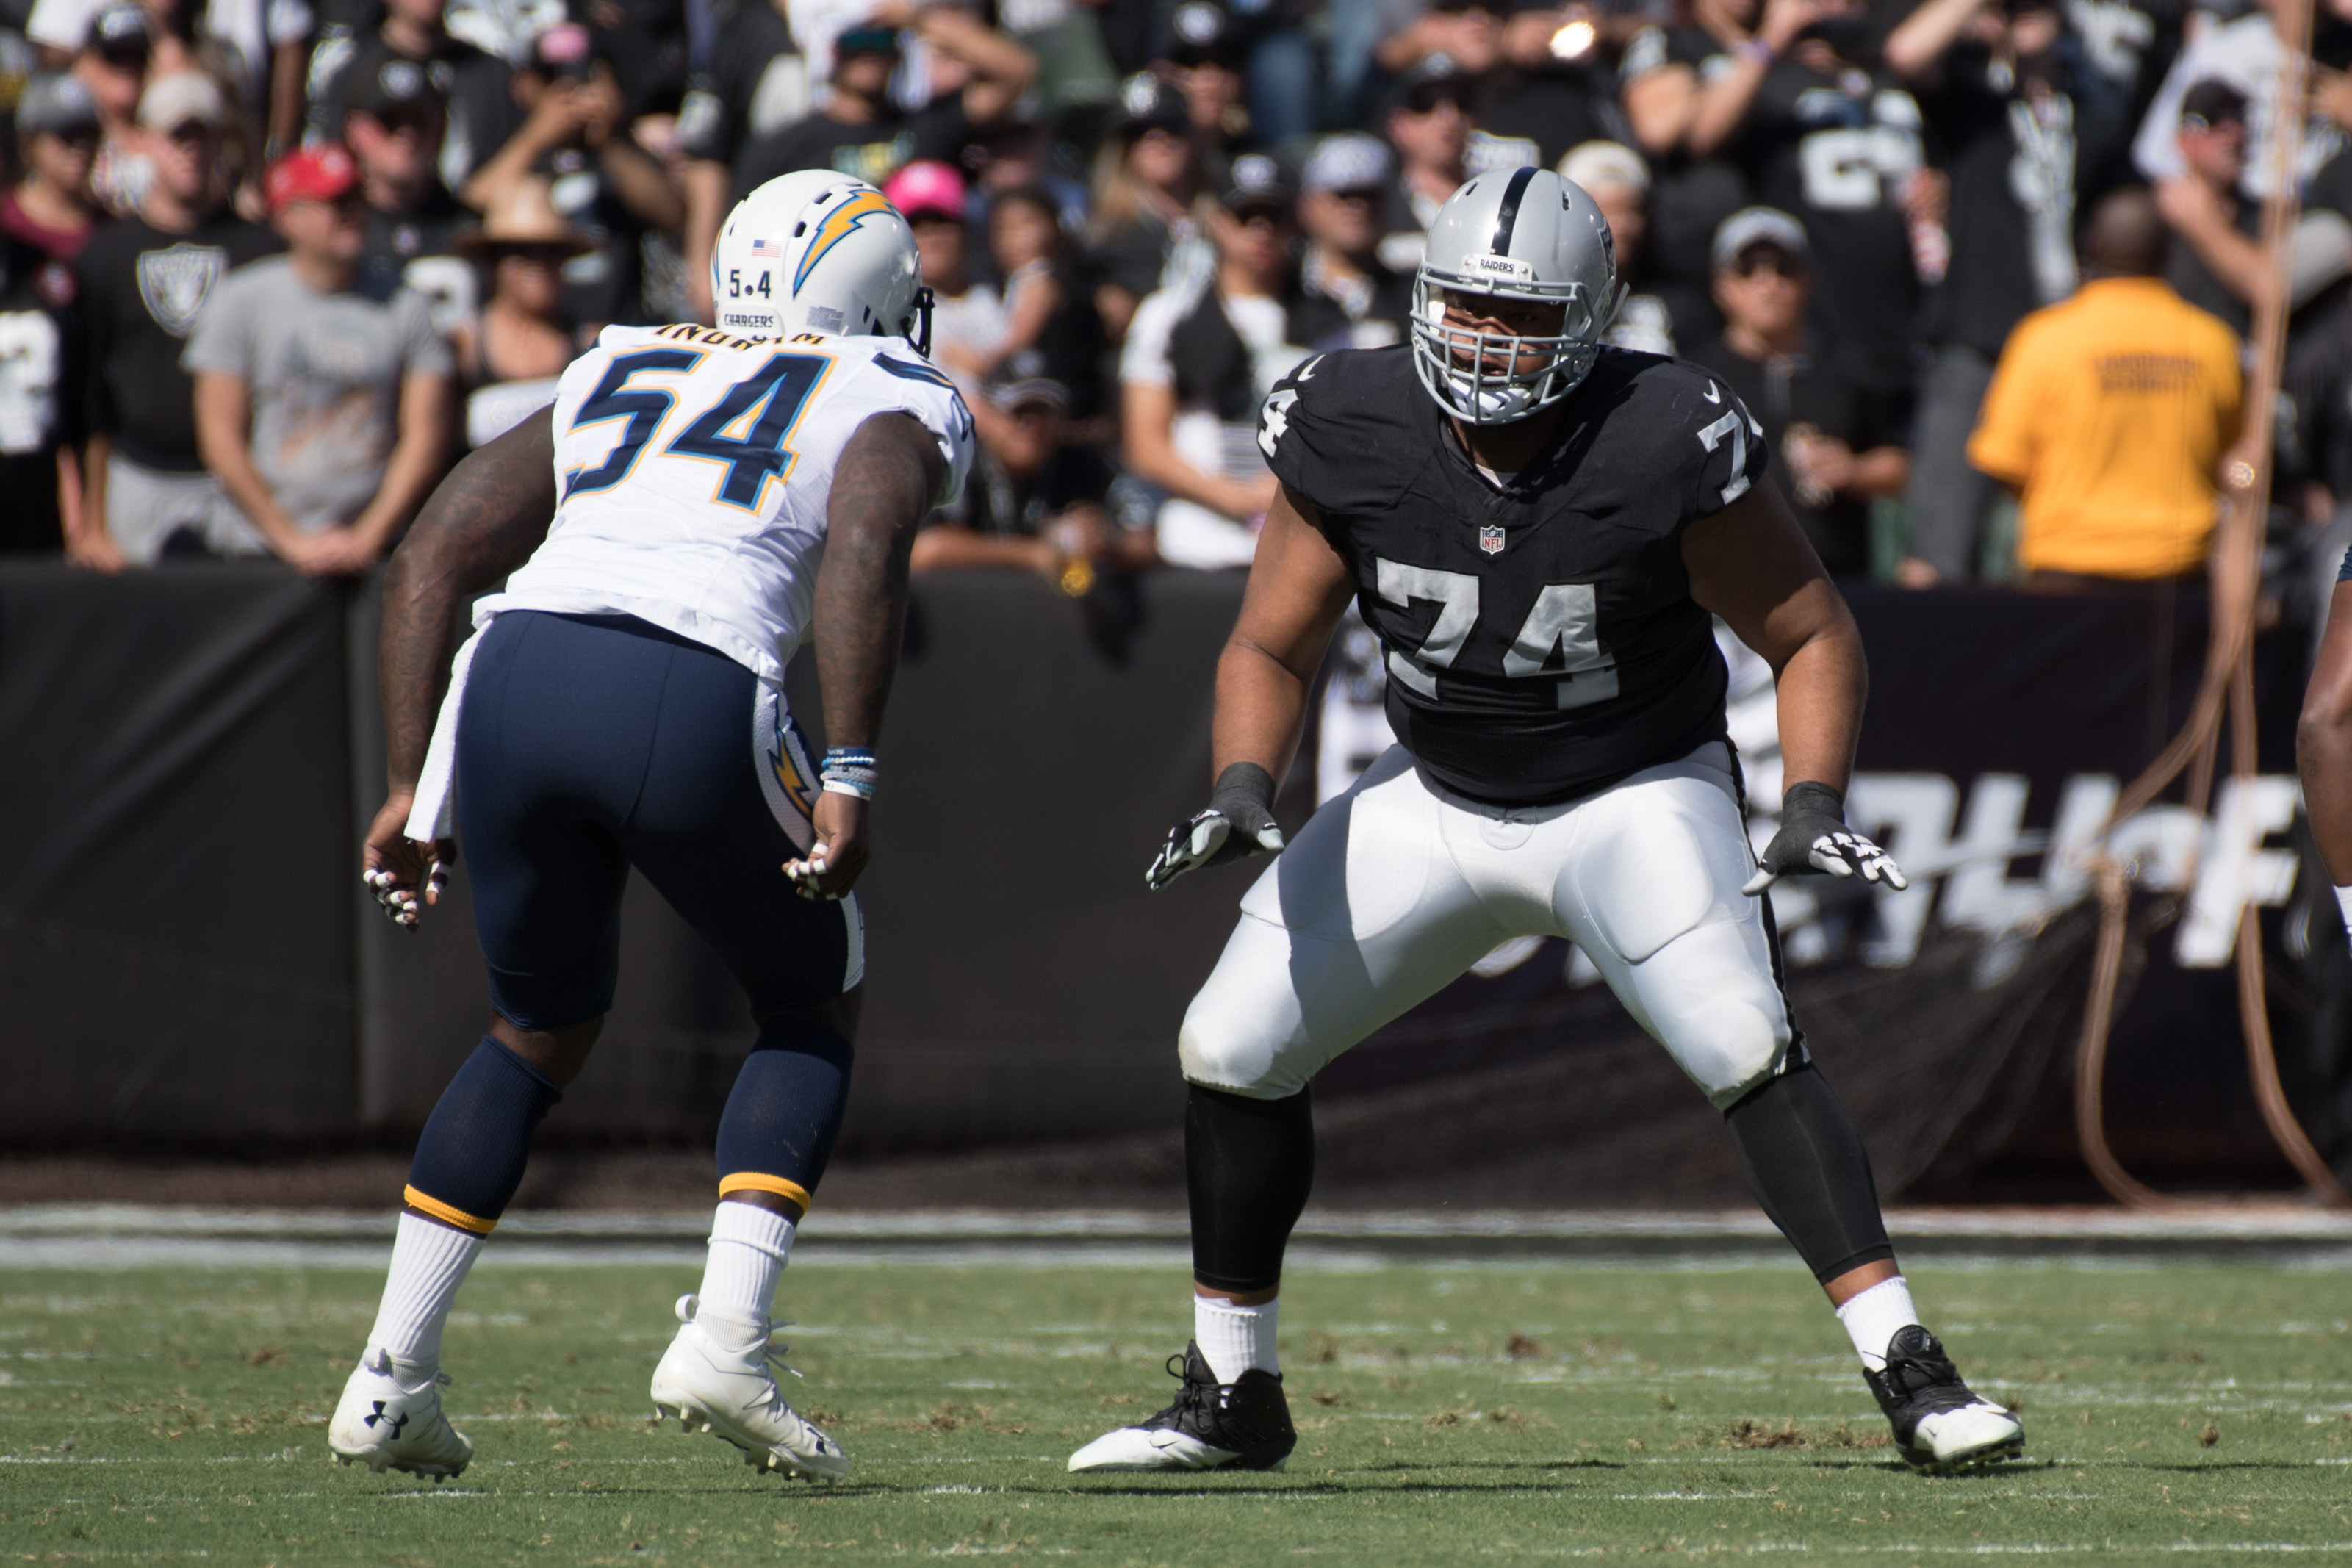 9630618-nfl-san-diego-chargers-at-oakland-raiders